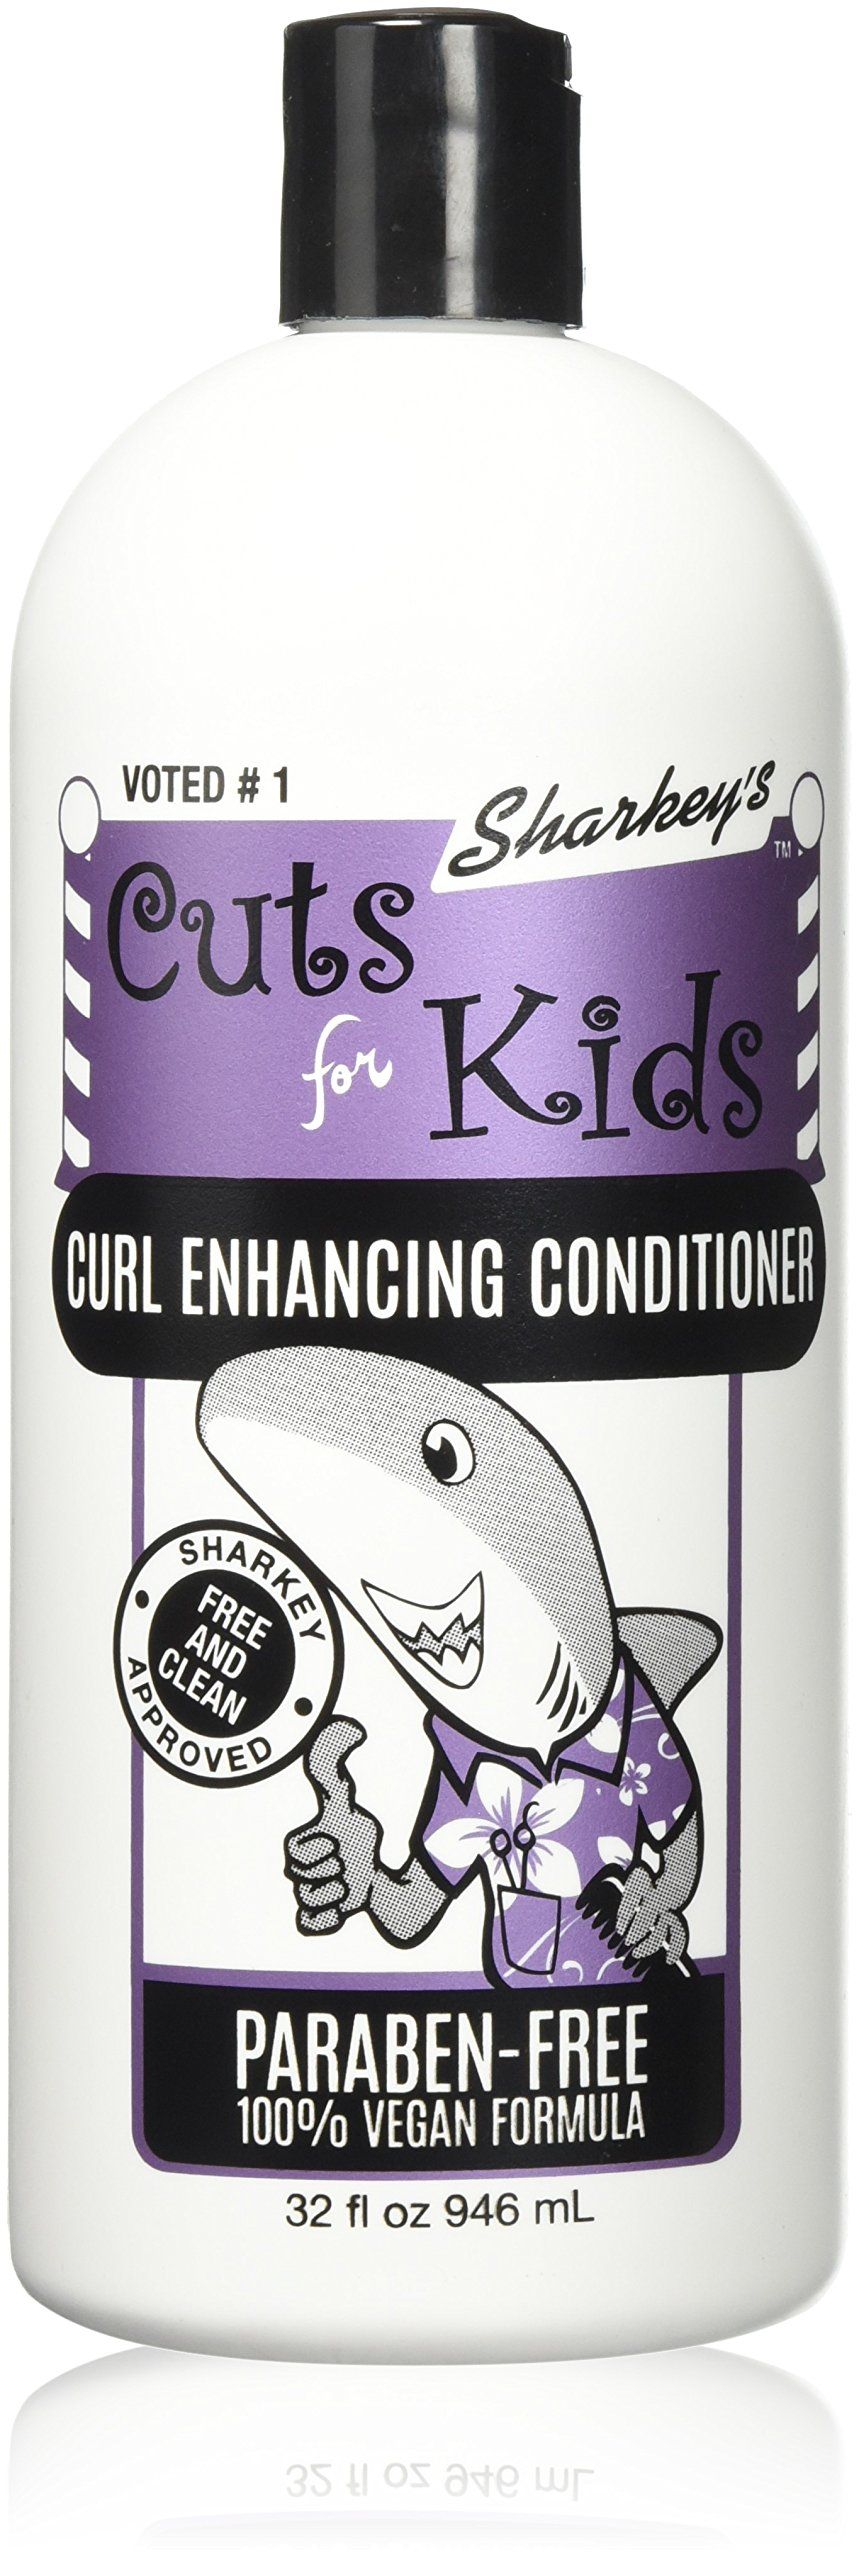 Sharkey's FREE & CLEAN Line Just for Kids, Curl Enhancing Conditioner, PARABEN-FREE, Large, 32oz